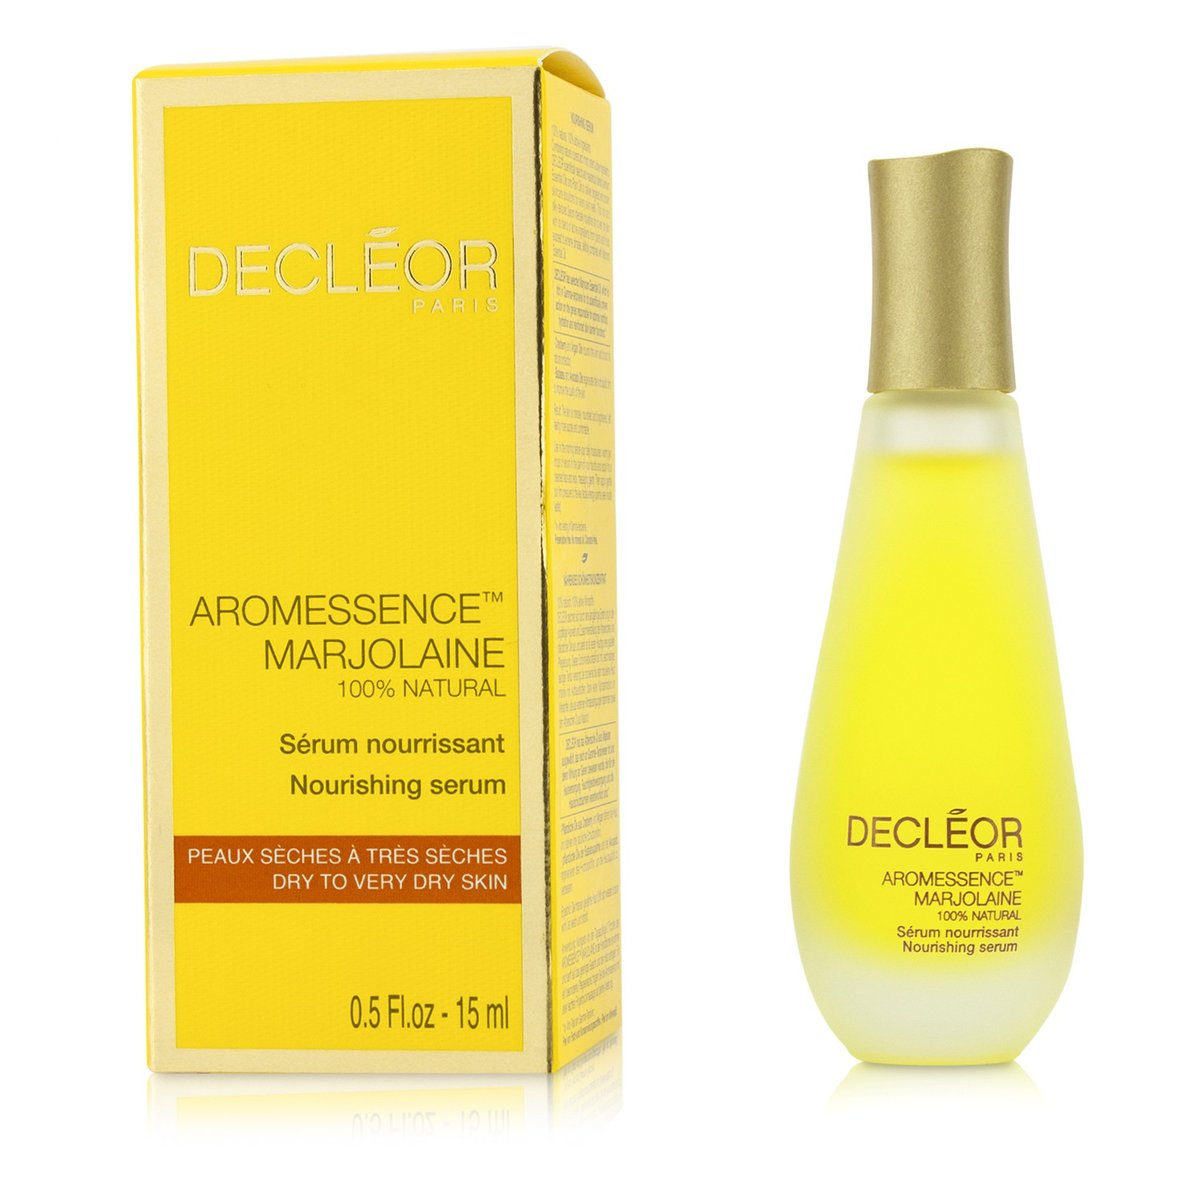 Decleor - Aromessence Marjolaine Nourishing Serum (Dry to Very Dry Skin, Salon Size) -50ml/1.69oz Jason Super-c Cleanser - 6 Fl Oz